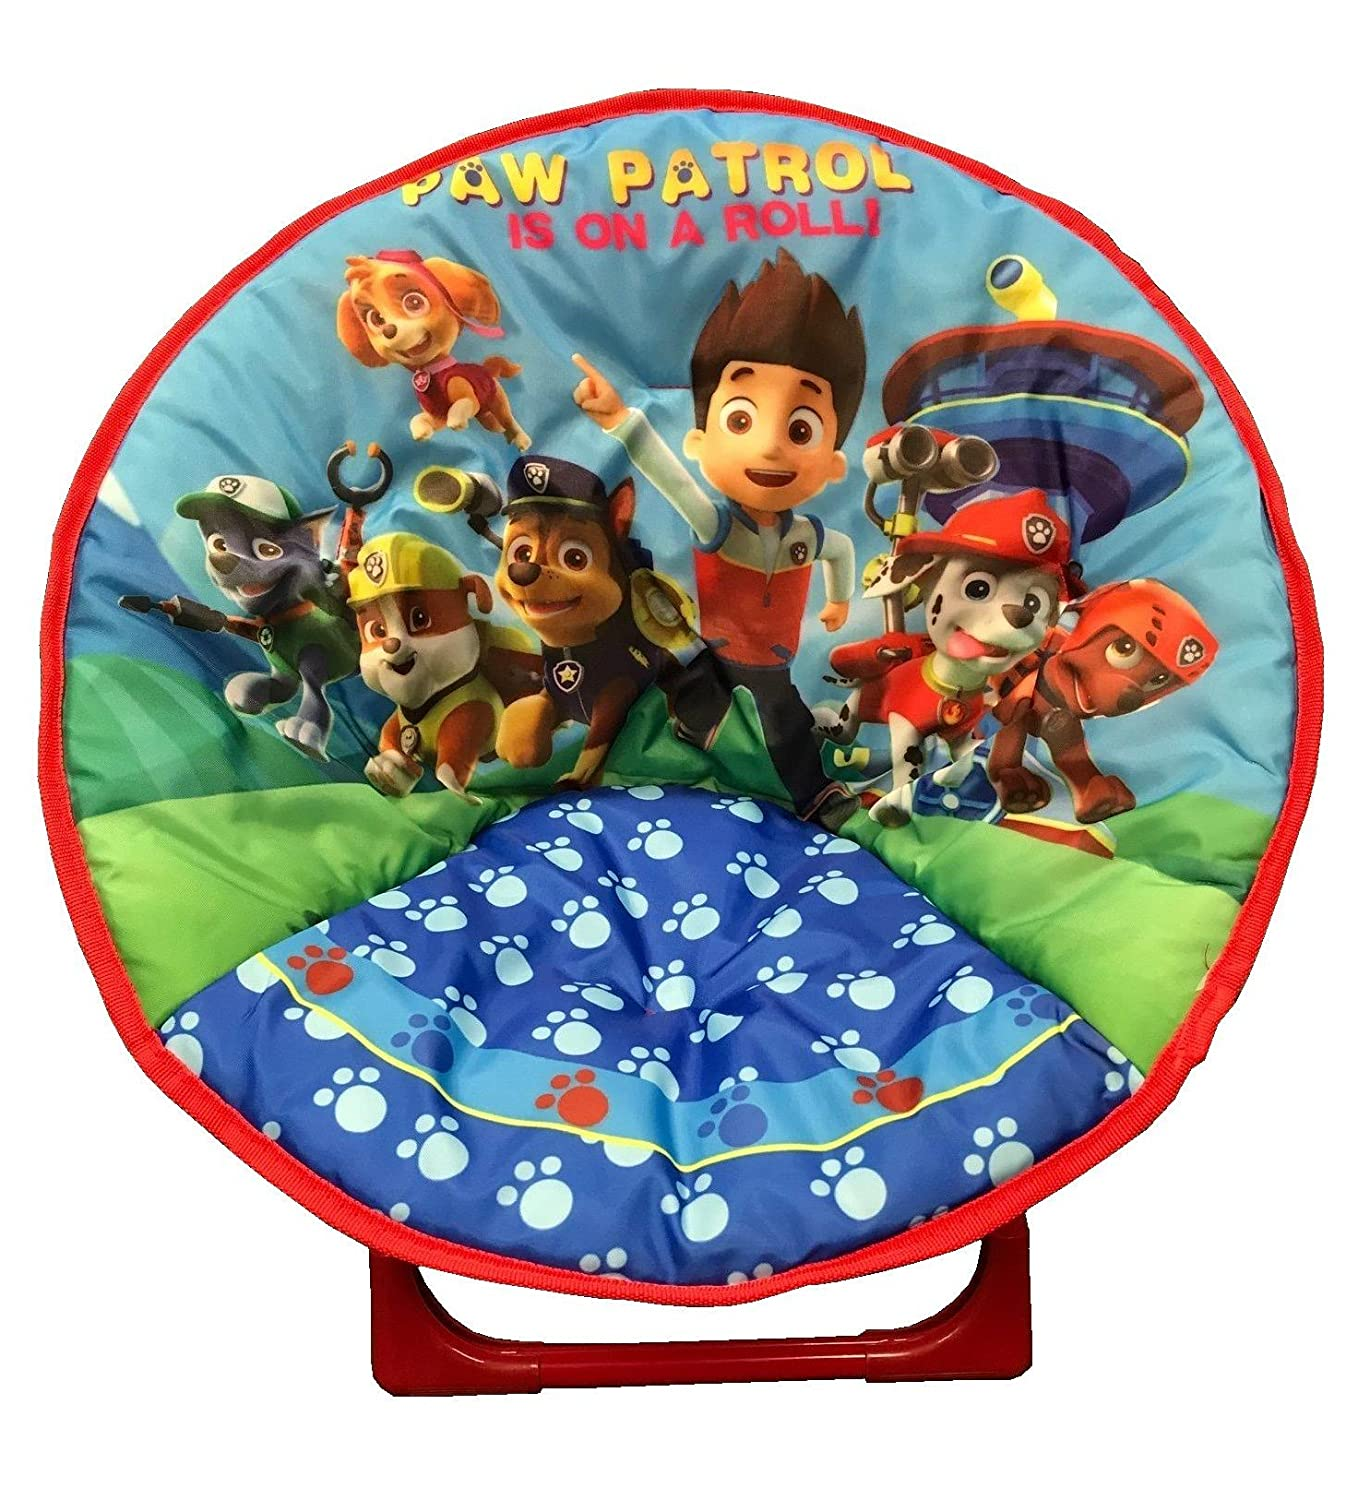 just4baby Kids Children Foldable Bedroom Play Room Moon Chair Moonchair Paw Patrol Design